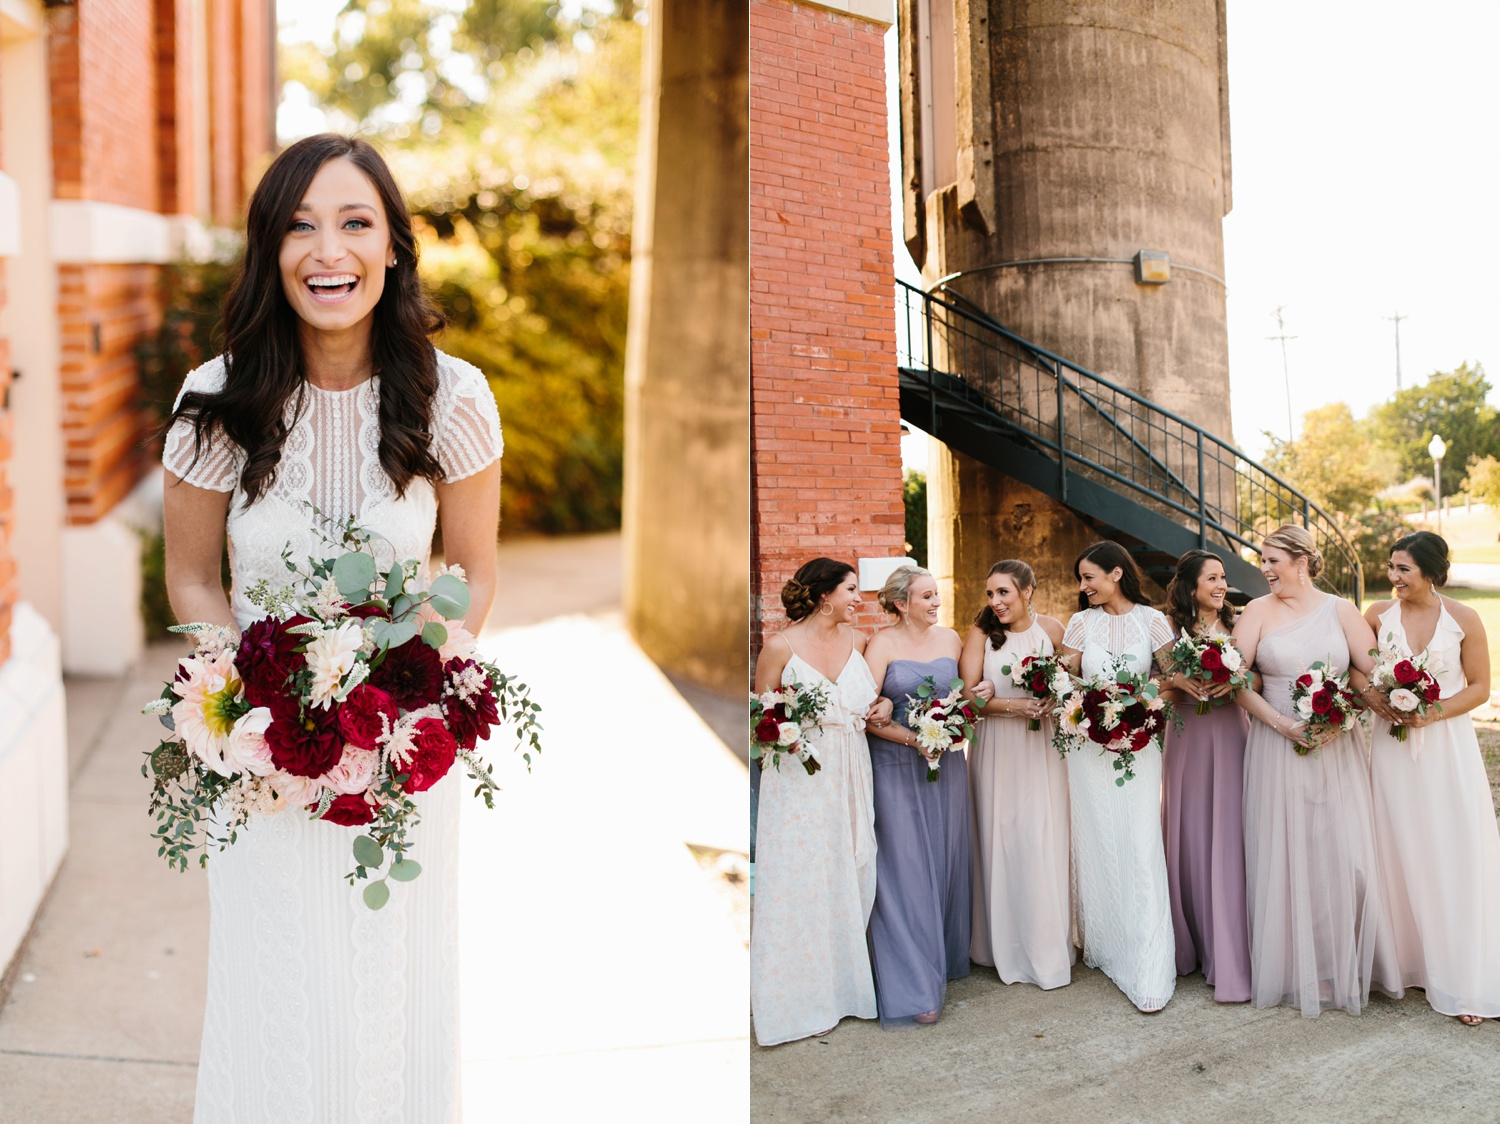 Kadee + Tyler | a raw, emotional wedding at the Filter Building on White Rock Lake in Dallas, TX by North Texas Wedding Photographer, Rachel Meagan Photography 101